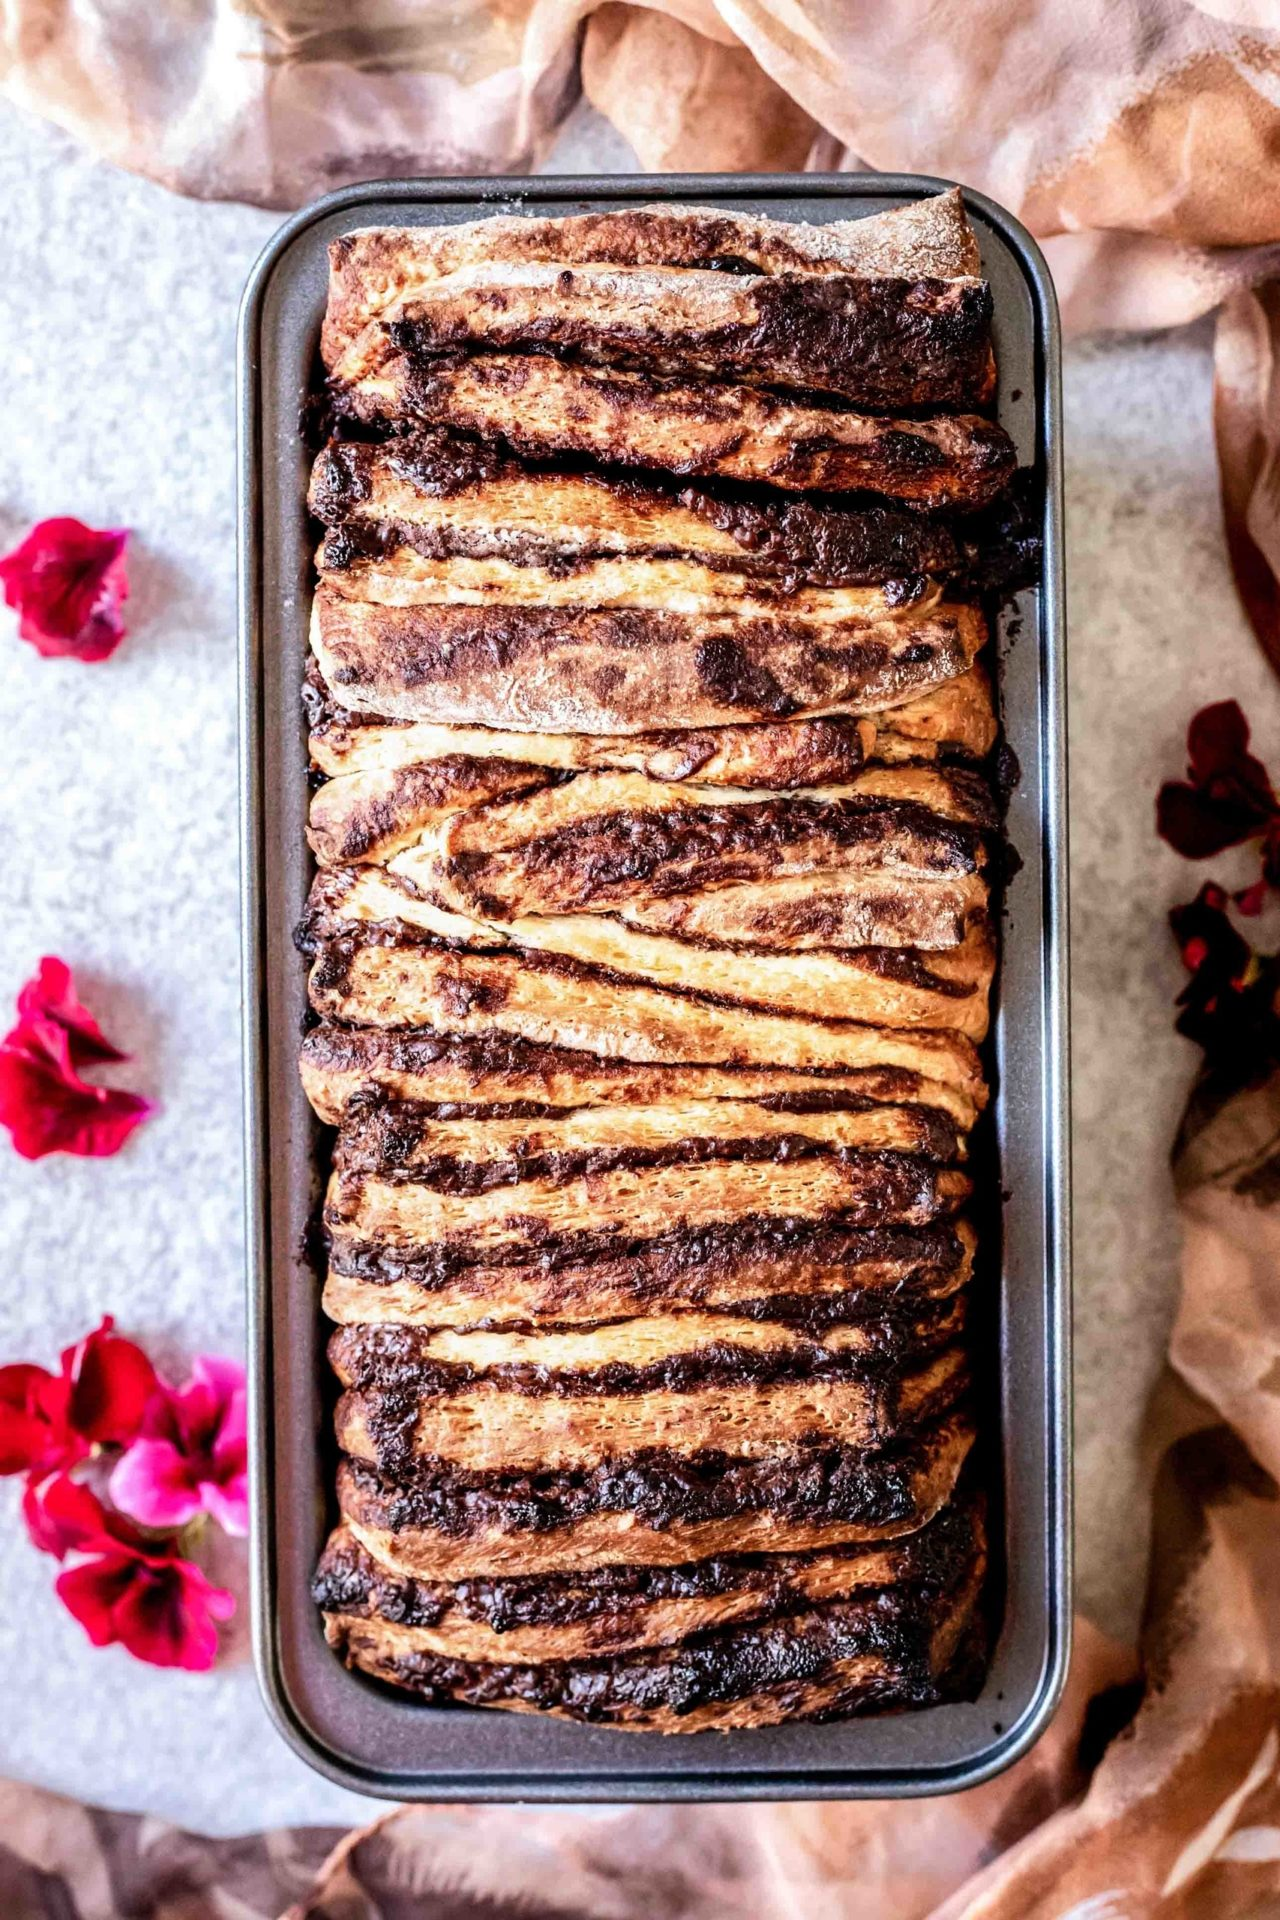 This Gluten-Free Nutella Pull-Apart Bread is pillowy soft, tender, chocolaty, Nutella-infused, flavorful and so delicious!